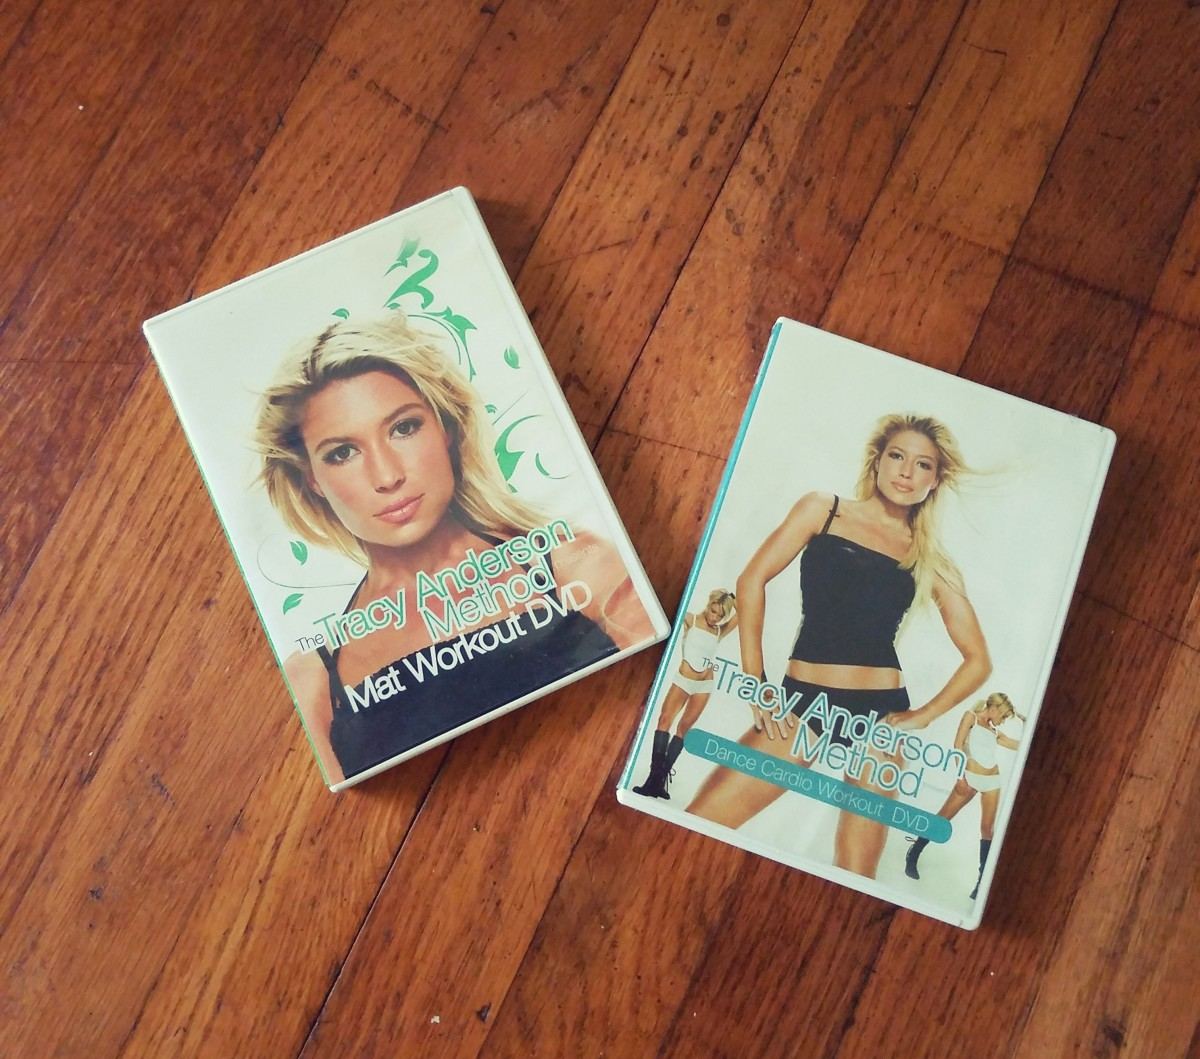 Tracy Anderson Mat Workout and Dance Cardio DVDs